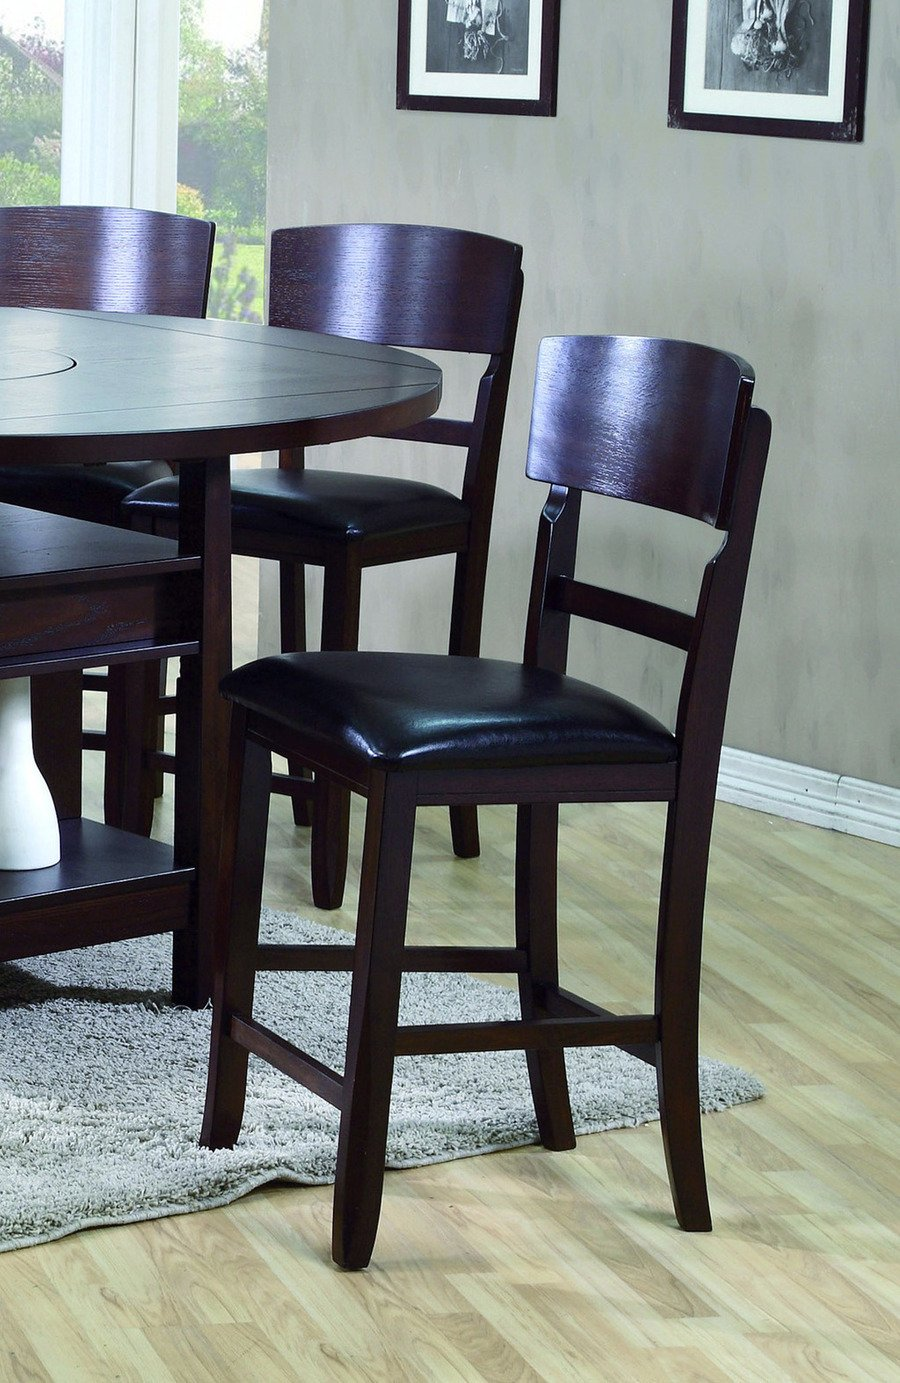 Conner Counter Height Chair Set of 2 by Crown Mark